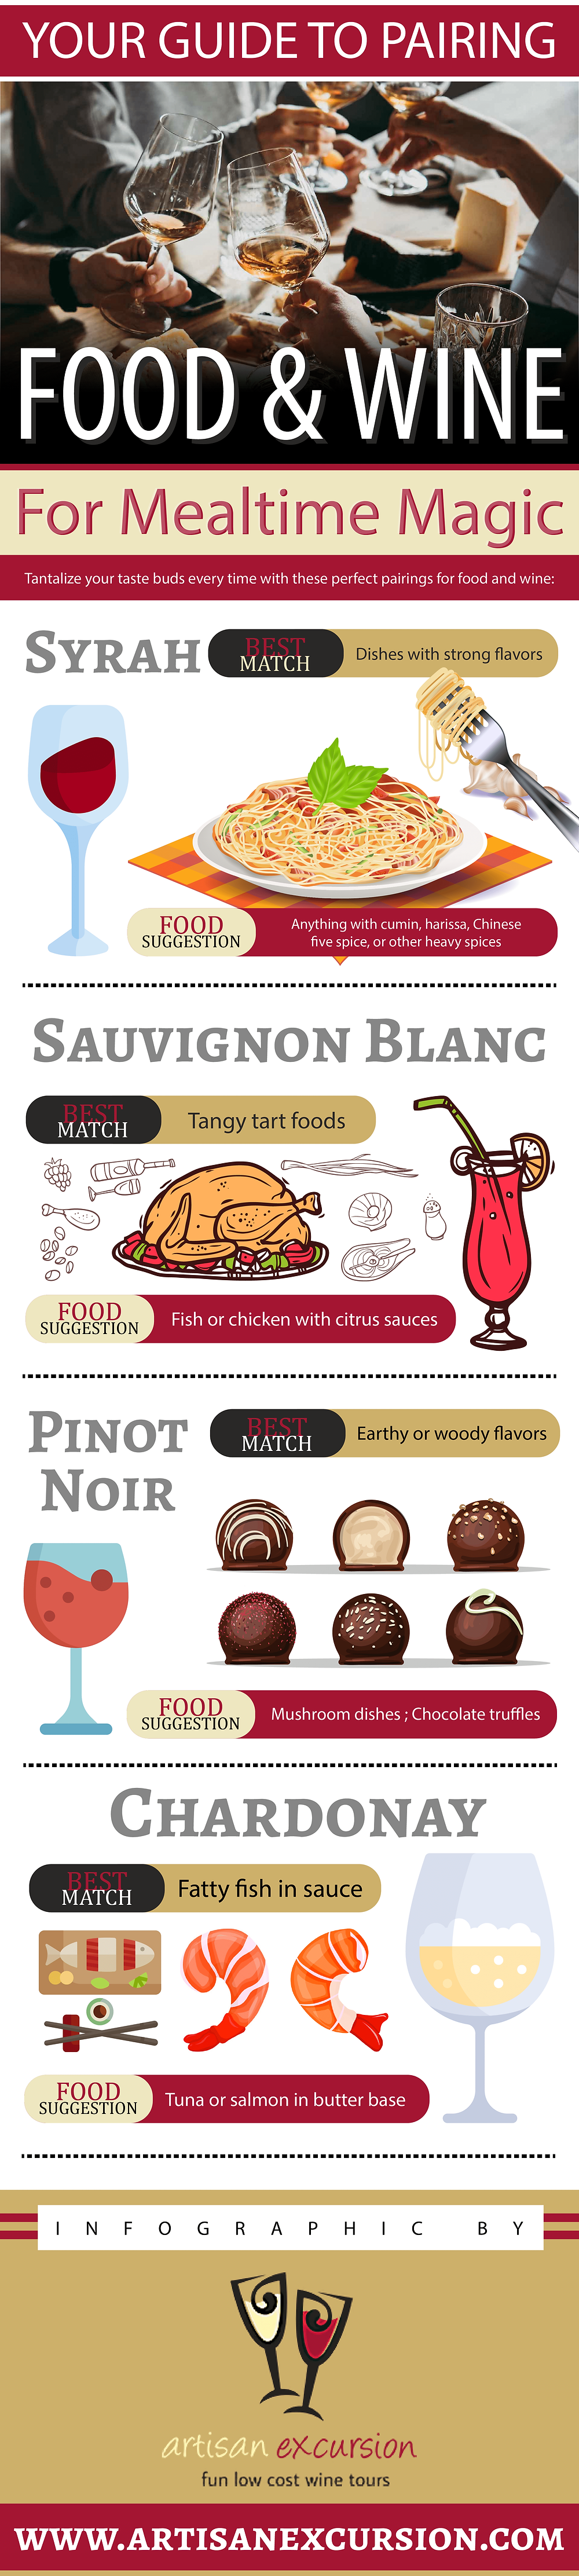 guide to pair food and wine